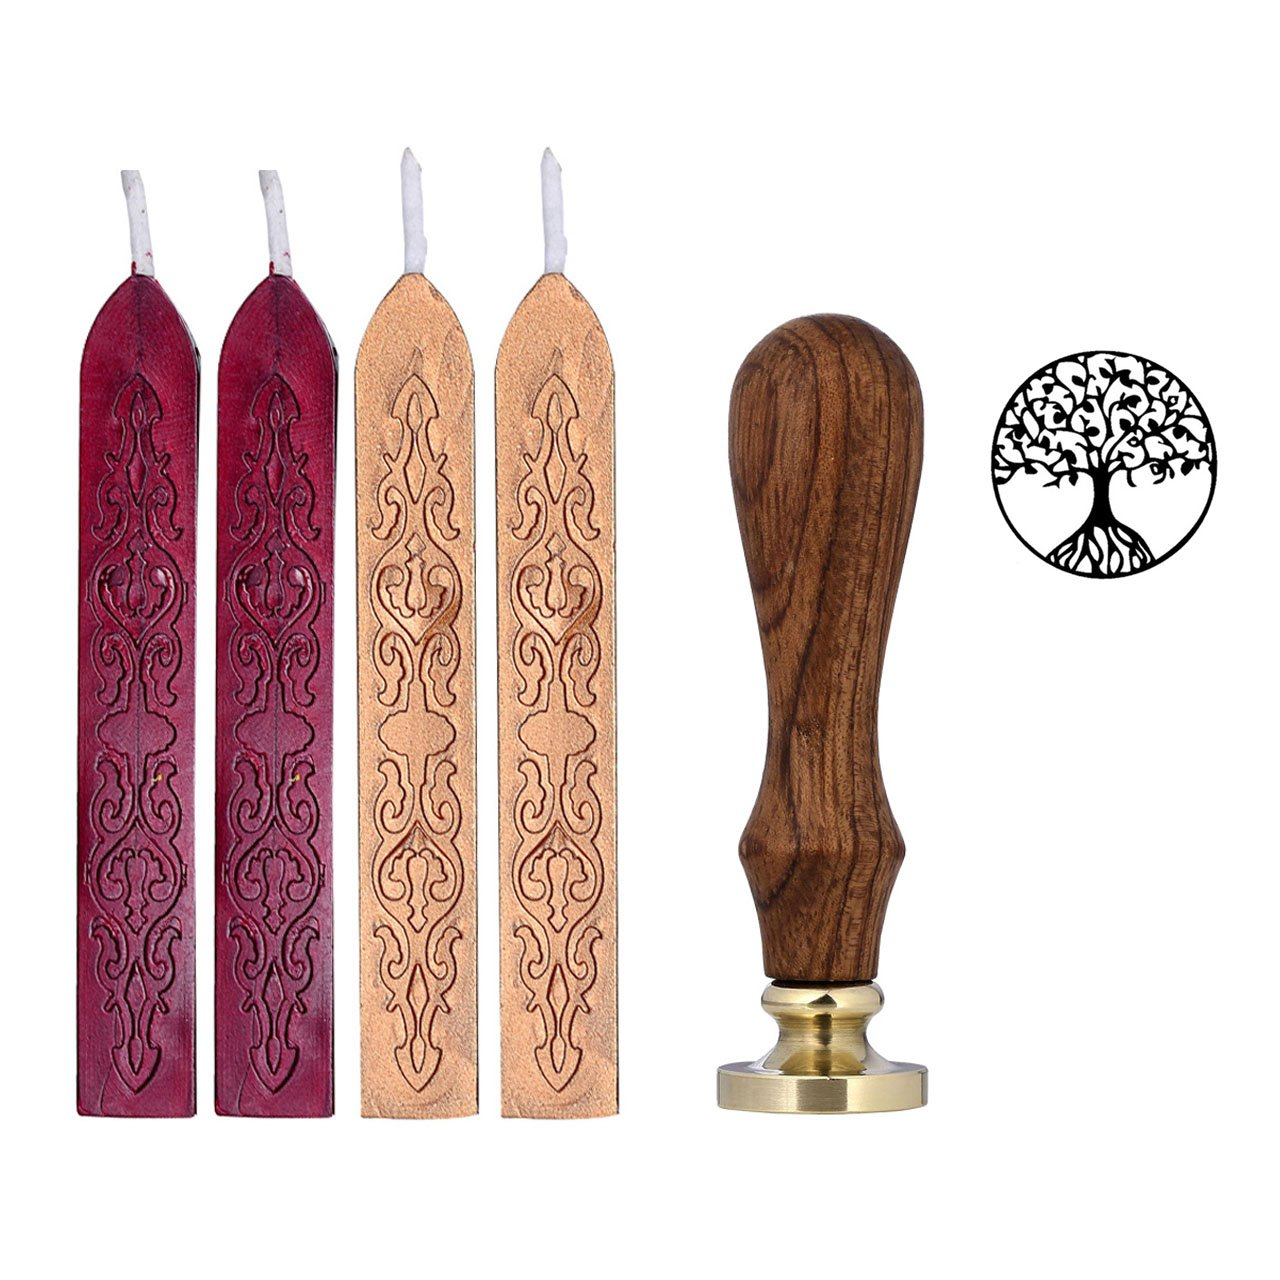 Wax Seal Stamp Set, Yoption 4 Pcs Totem Fire Manuscript Sealing Wax Sticks with Wick +1 Piece Wax Seal Stamp for Paper Stationery Envelope and Parcels Seals (Red Wine+Dark Gold+Tree of Life Stamp)